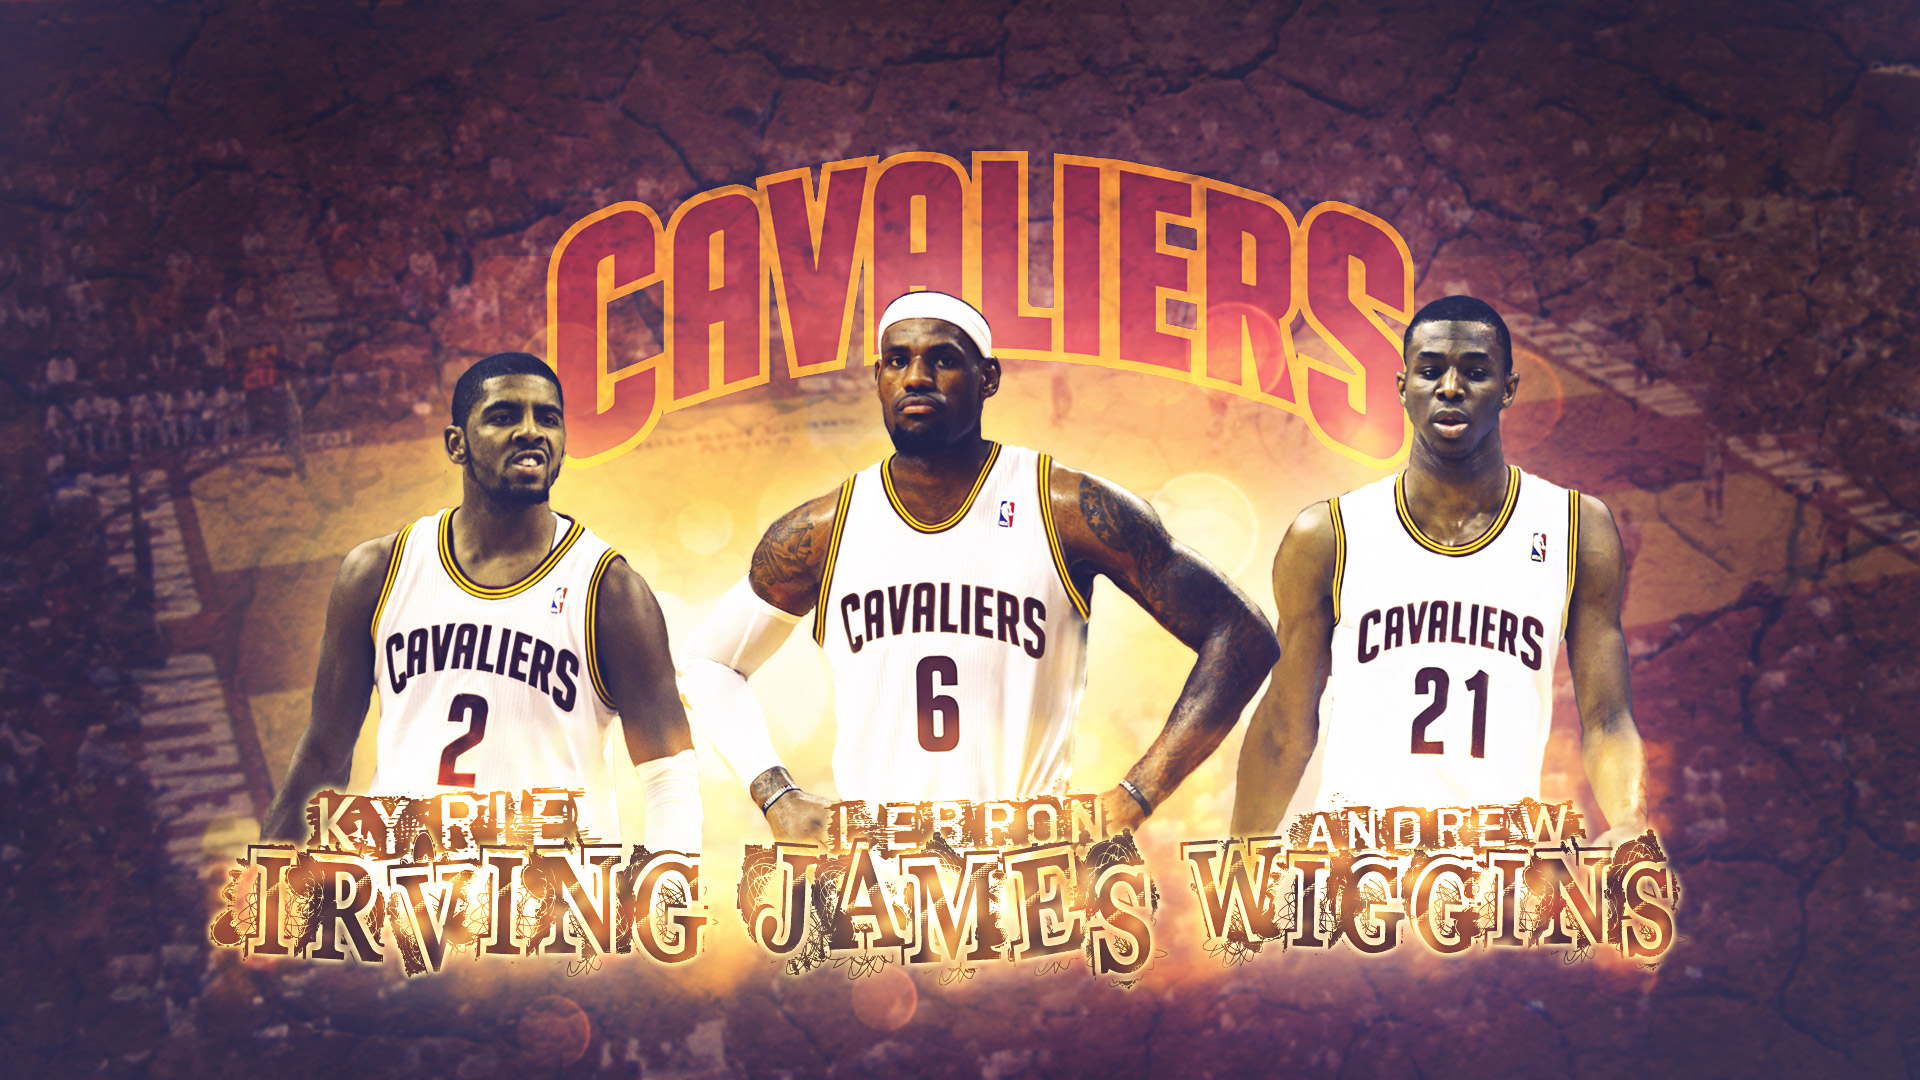 Cleveland Cavaliers Wallpapers at BasketWallpapers 1920x1080